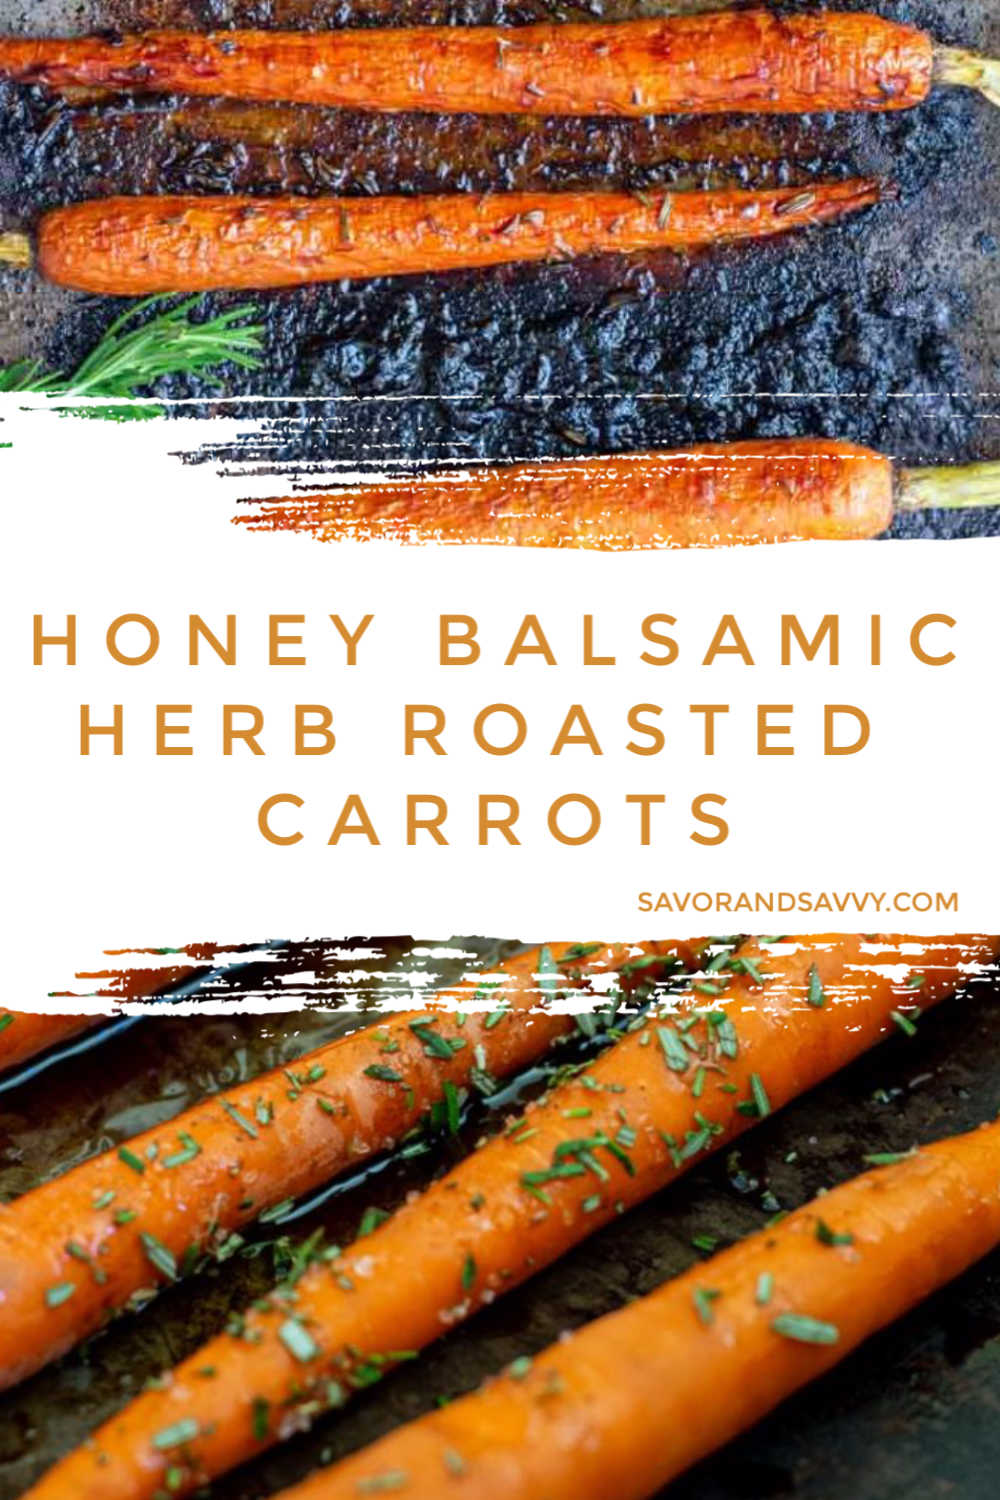 The Most Incredible Honey Herb Roasted Carrots with Balsamic Vinegar in 20 Minutes {WW 2 Points, Keto, Paleo, Vegan, Vegetarian, Whole 30, Gluten Free}